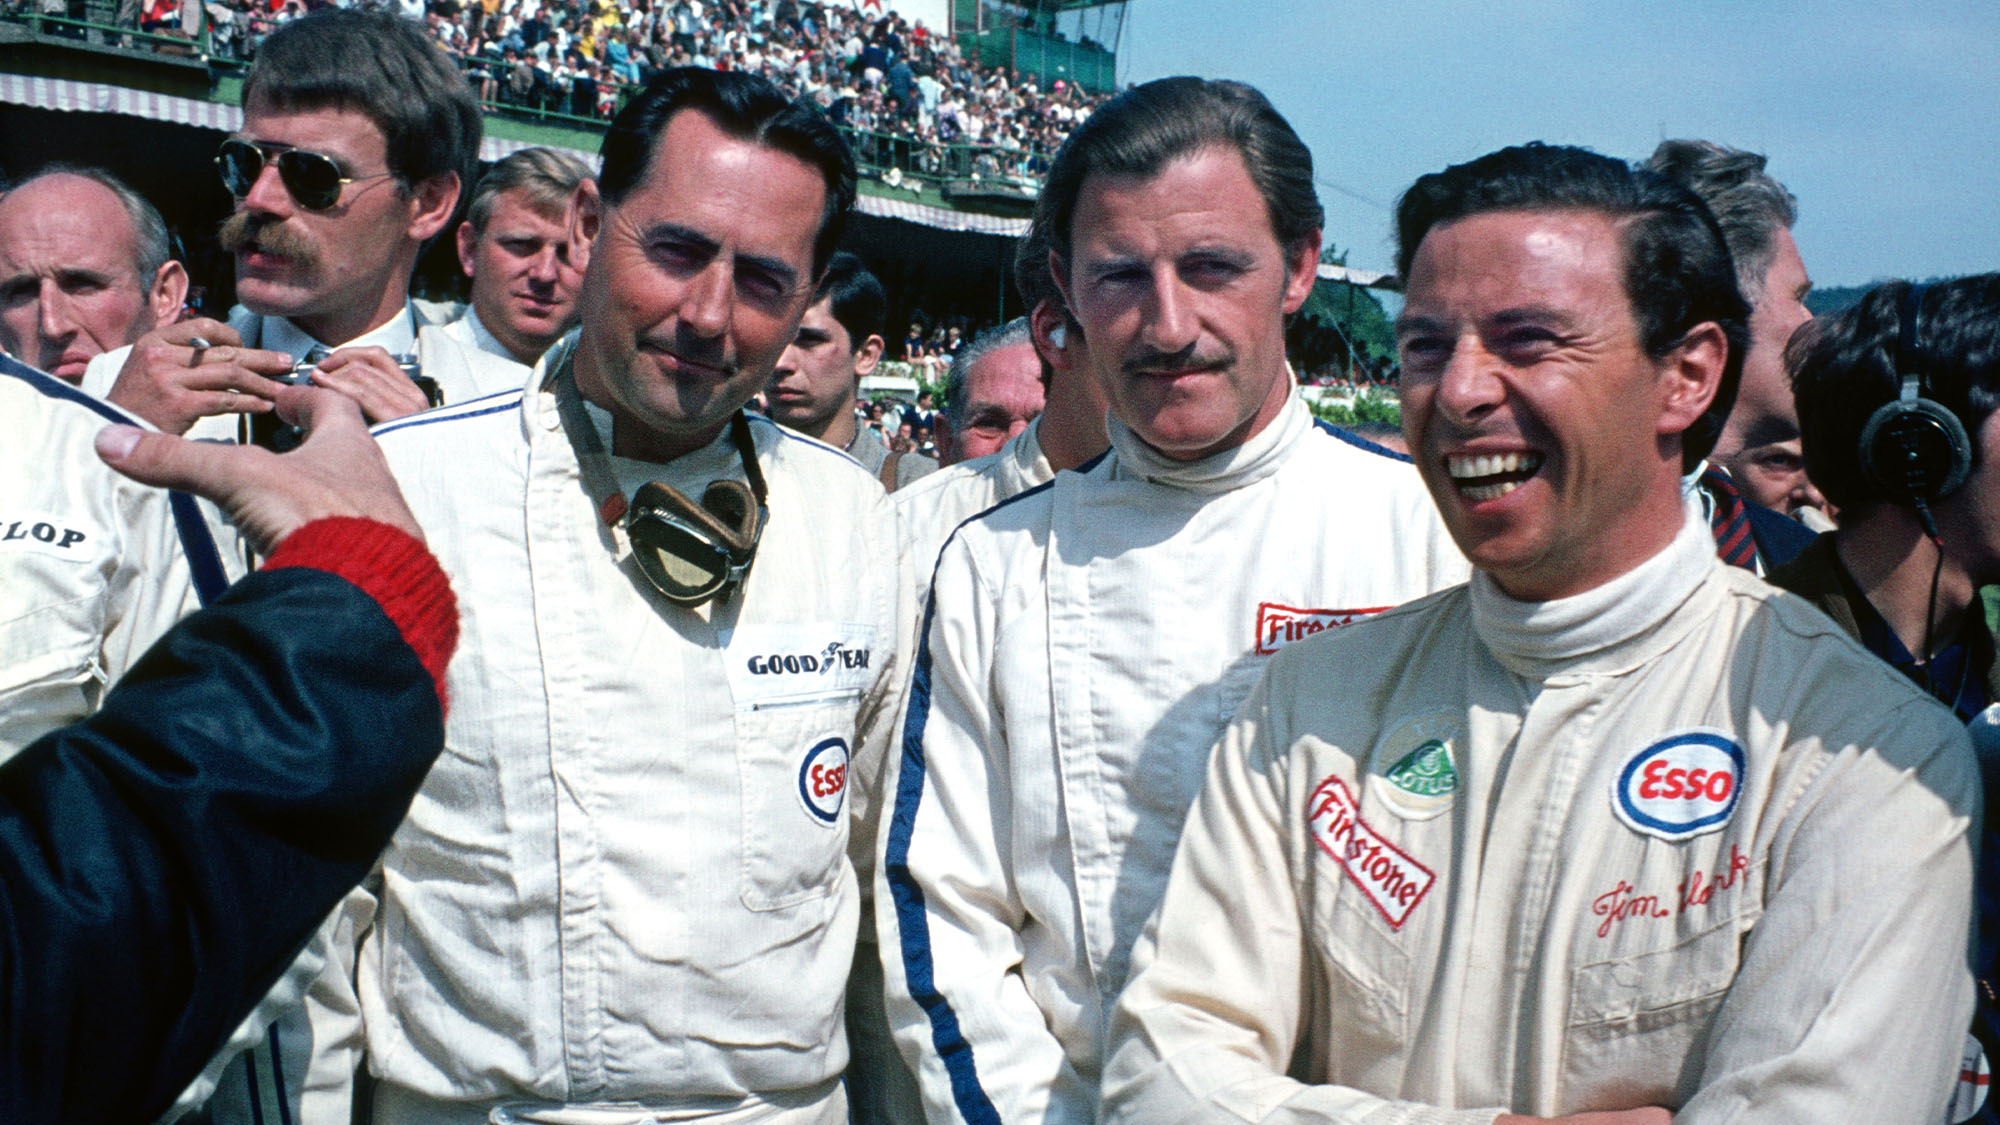 Jack Brabham (Brabham-Repco), Graham Hill () and Jim Clark (borh Lotus-Ford) before the 1967 Belgian Grand Prix in Spa-Francorchamps. Photo: Grand Prix Photo